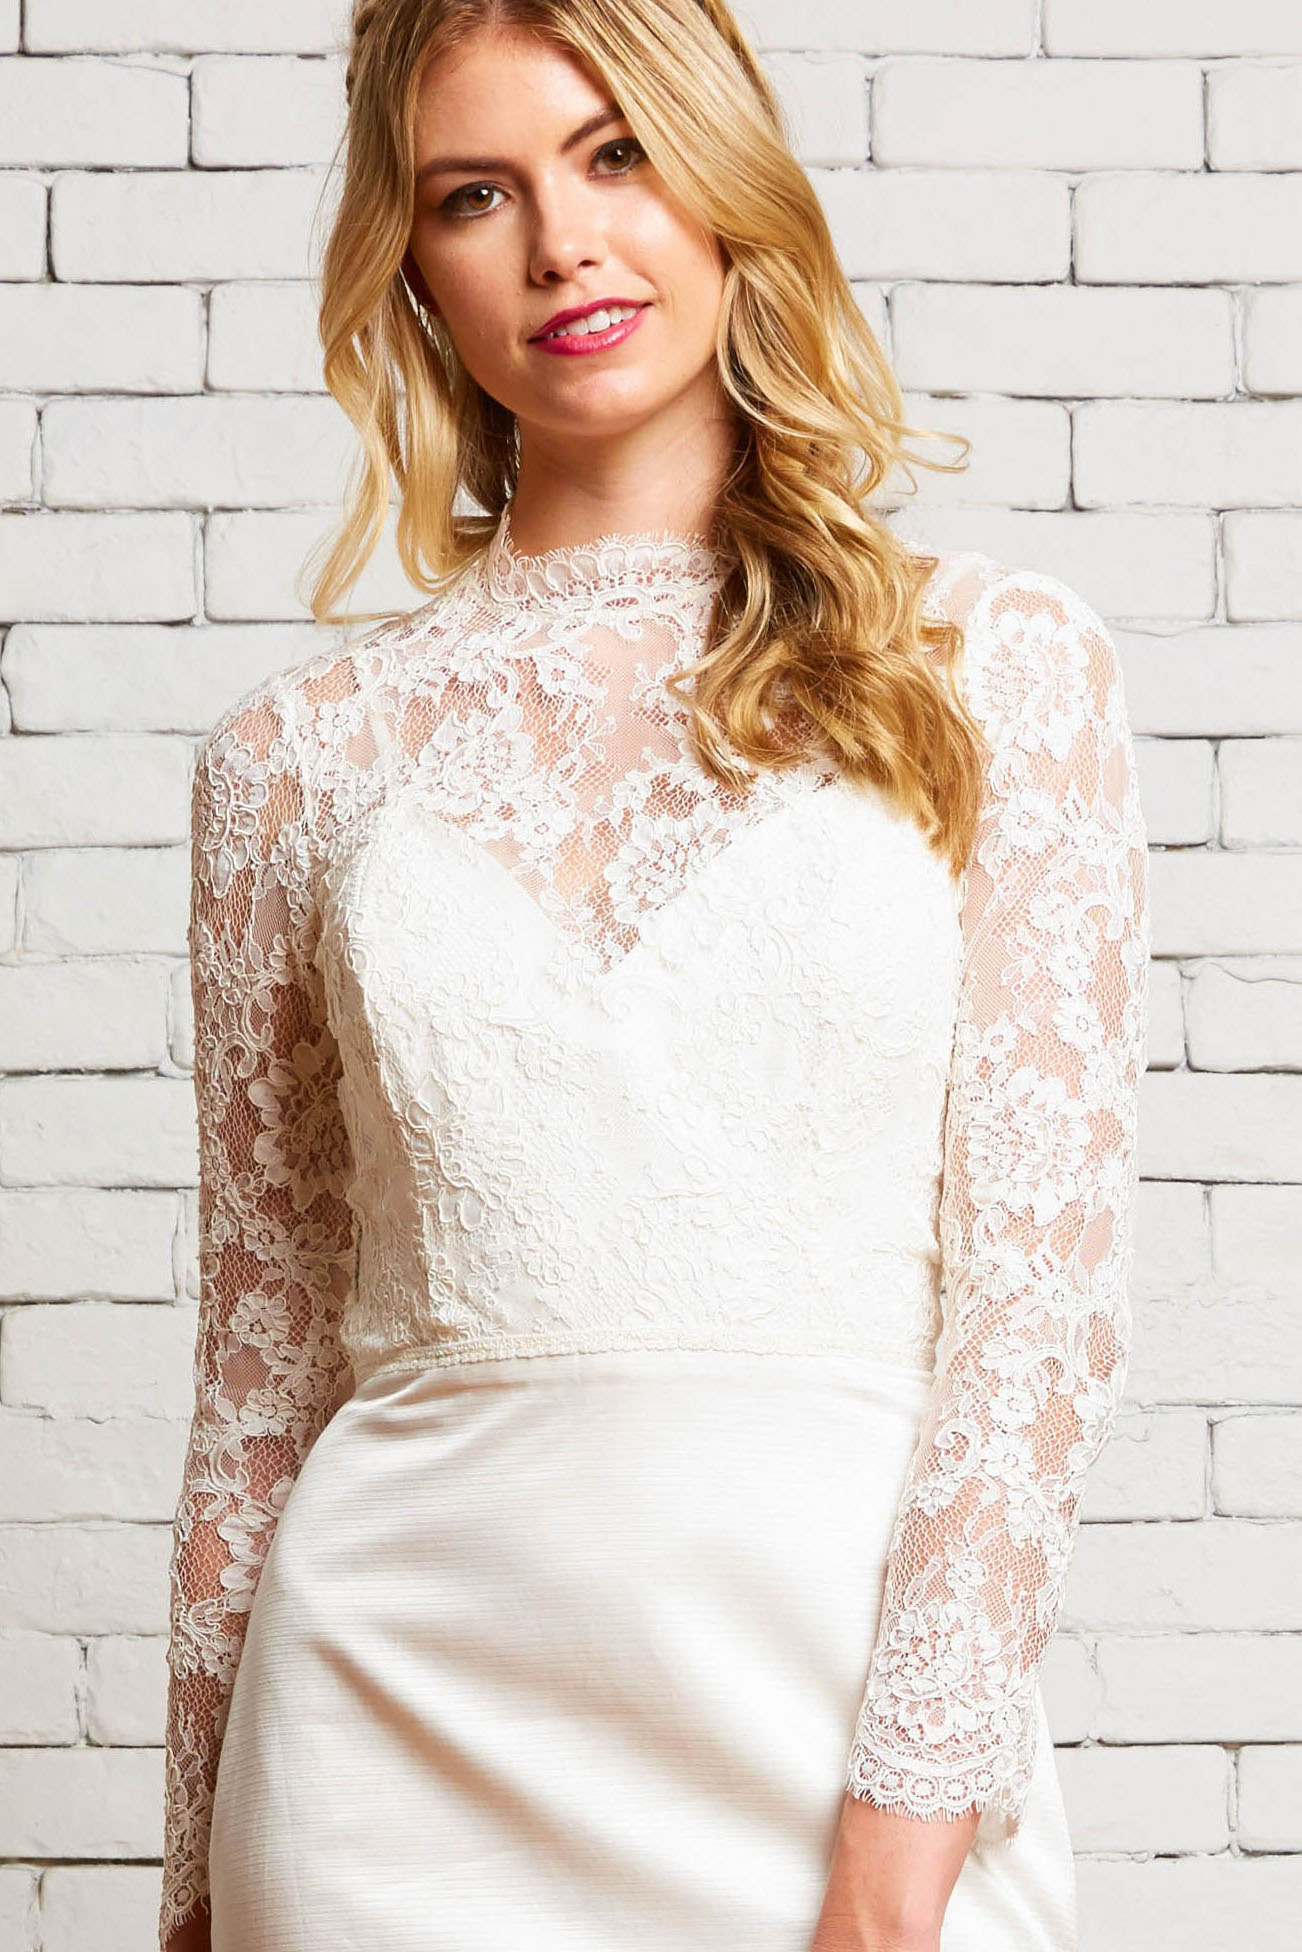 24A Victoria-Front-Rebecca Schoneveld-Modern_Lace_High-Neck_Long_Sleeve_Top.jpg